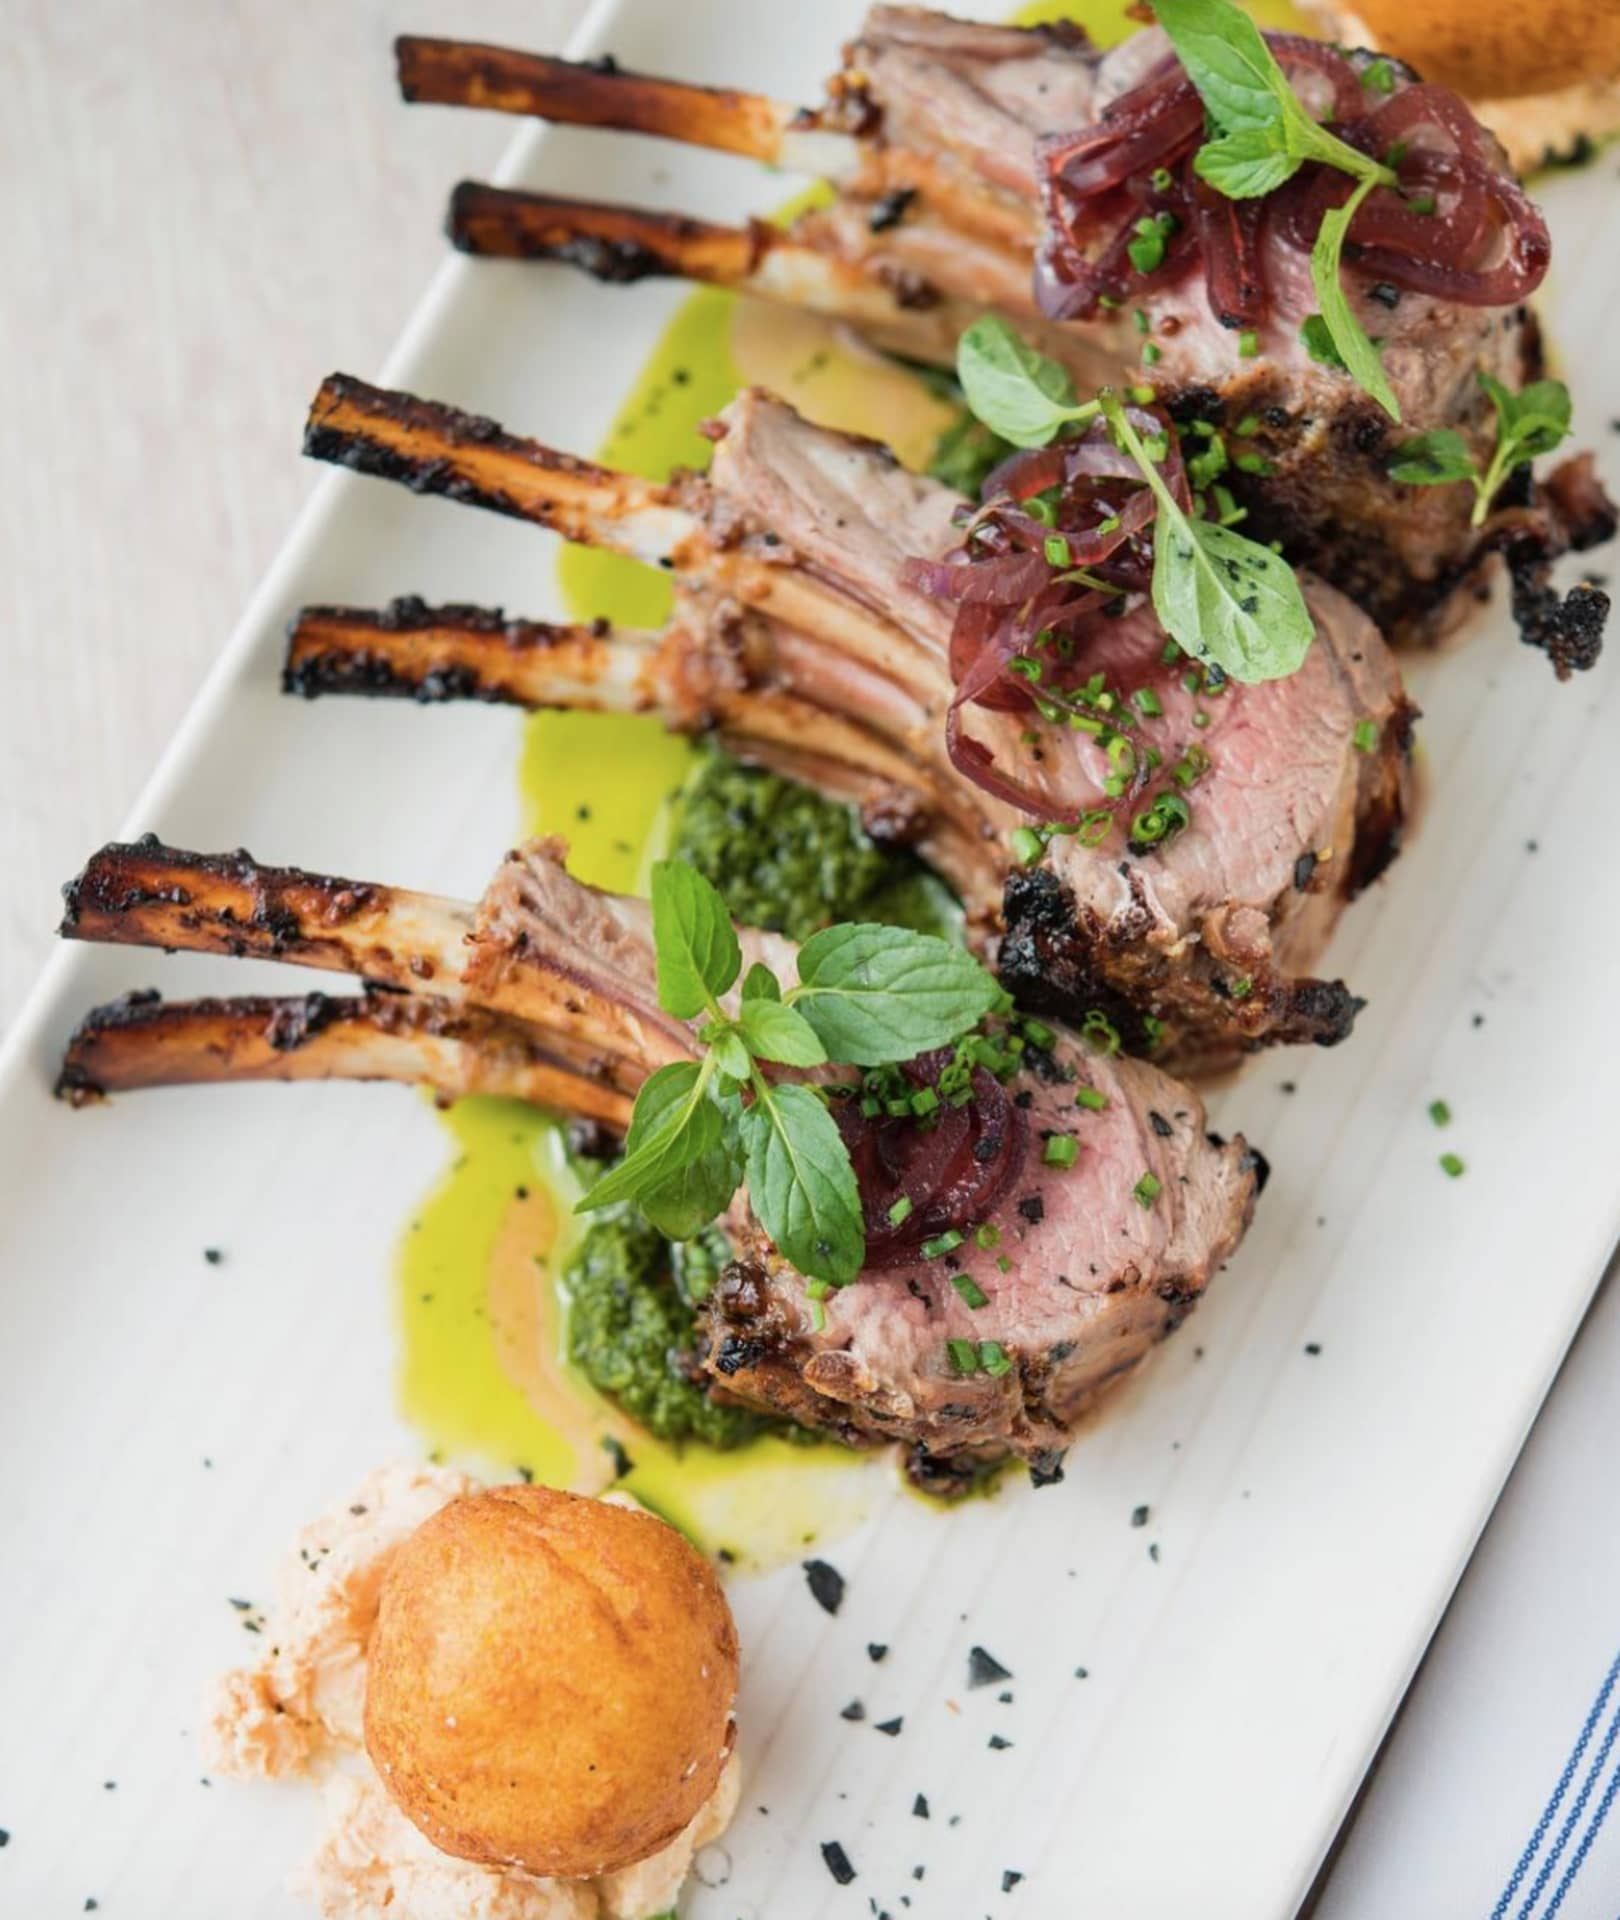 GRILLED NEW ZEALAND LAMB RACK